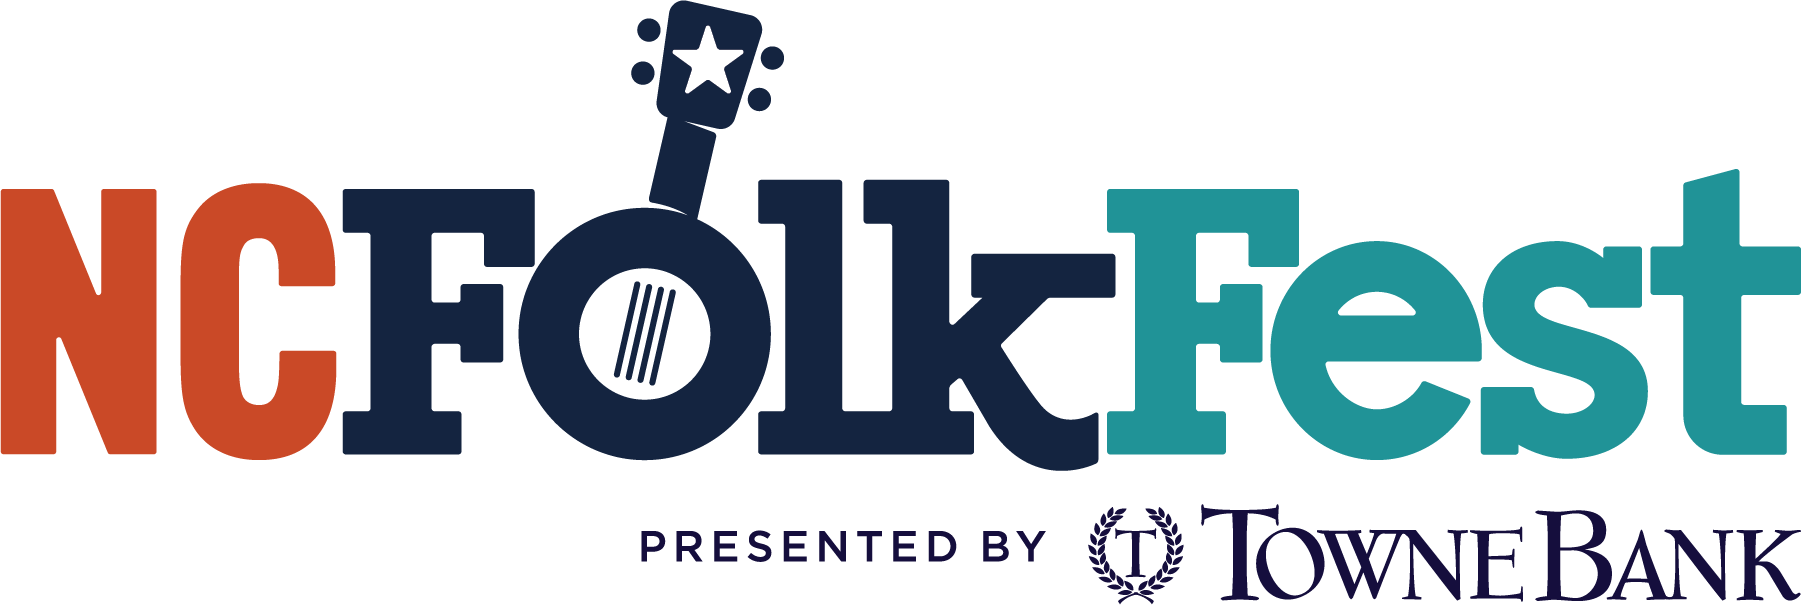 NC Folk Fest presented by Towne Bank.